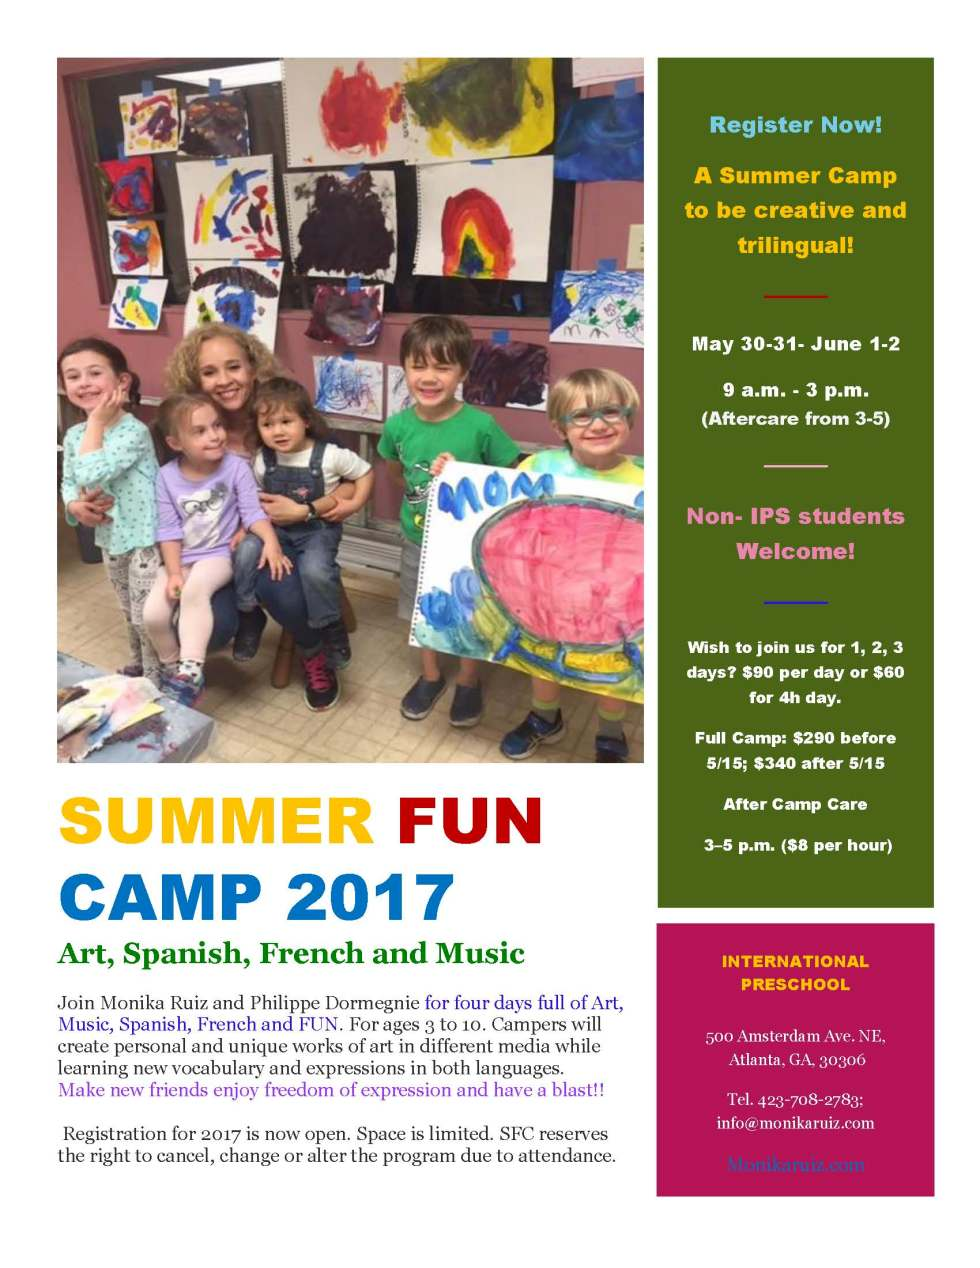 Summer Fun Camp 2017 with Monika Ruiz and Philippe Dormegnie